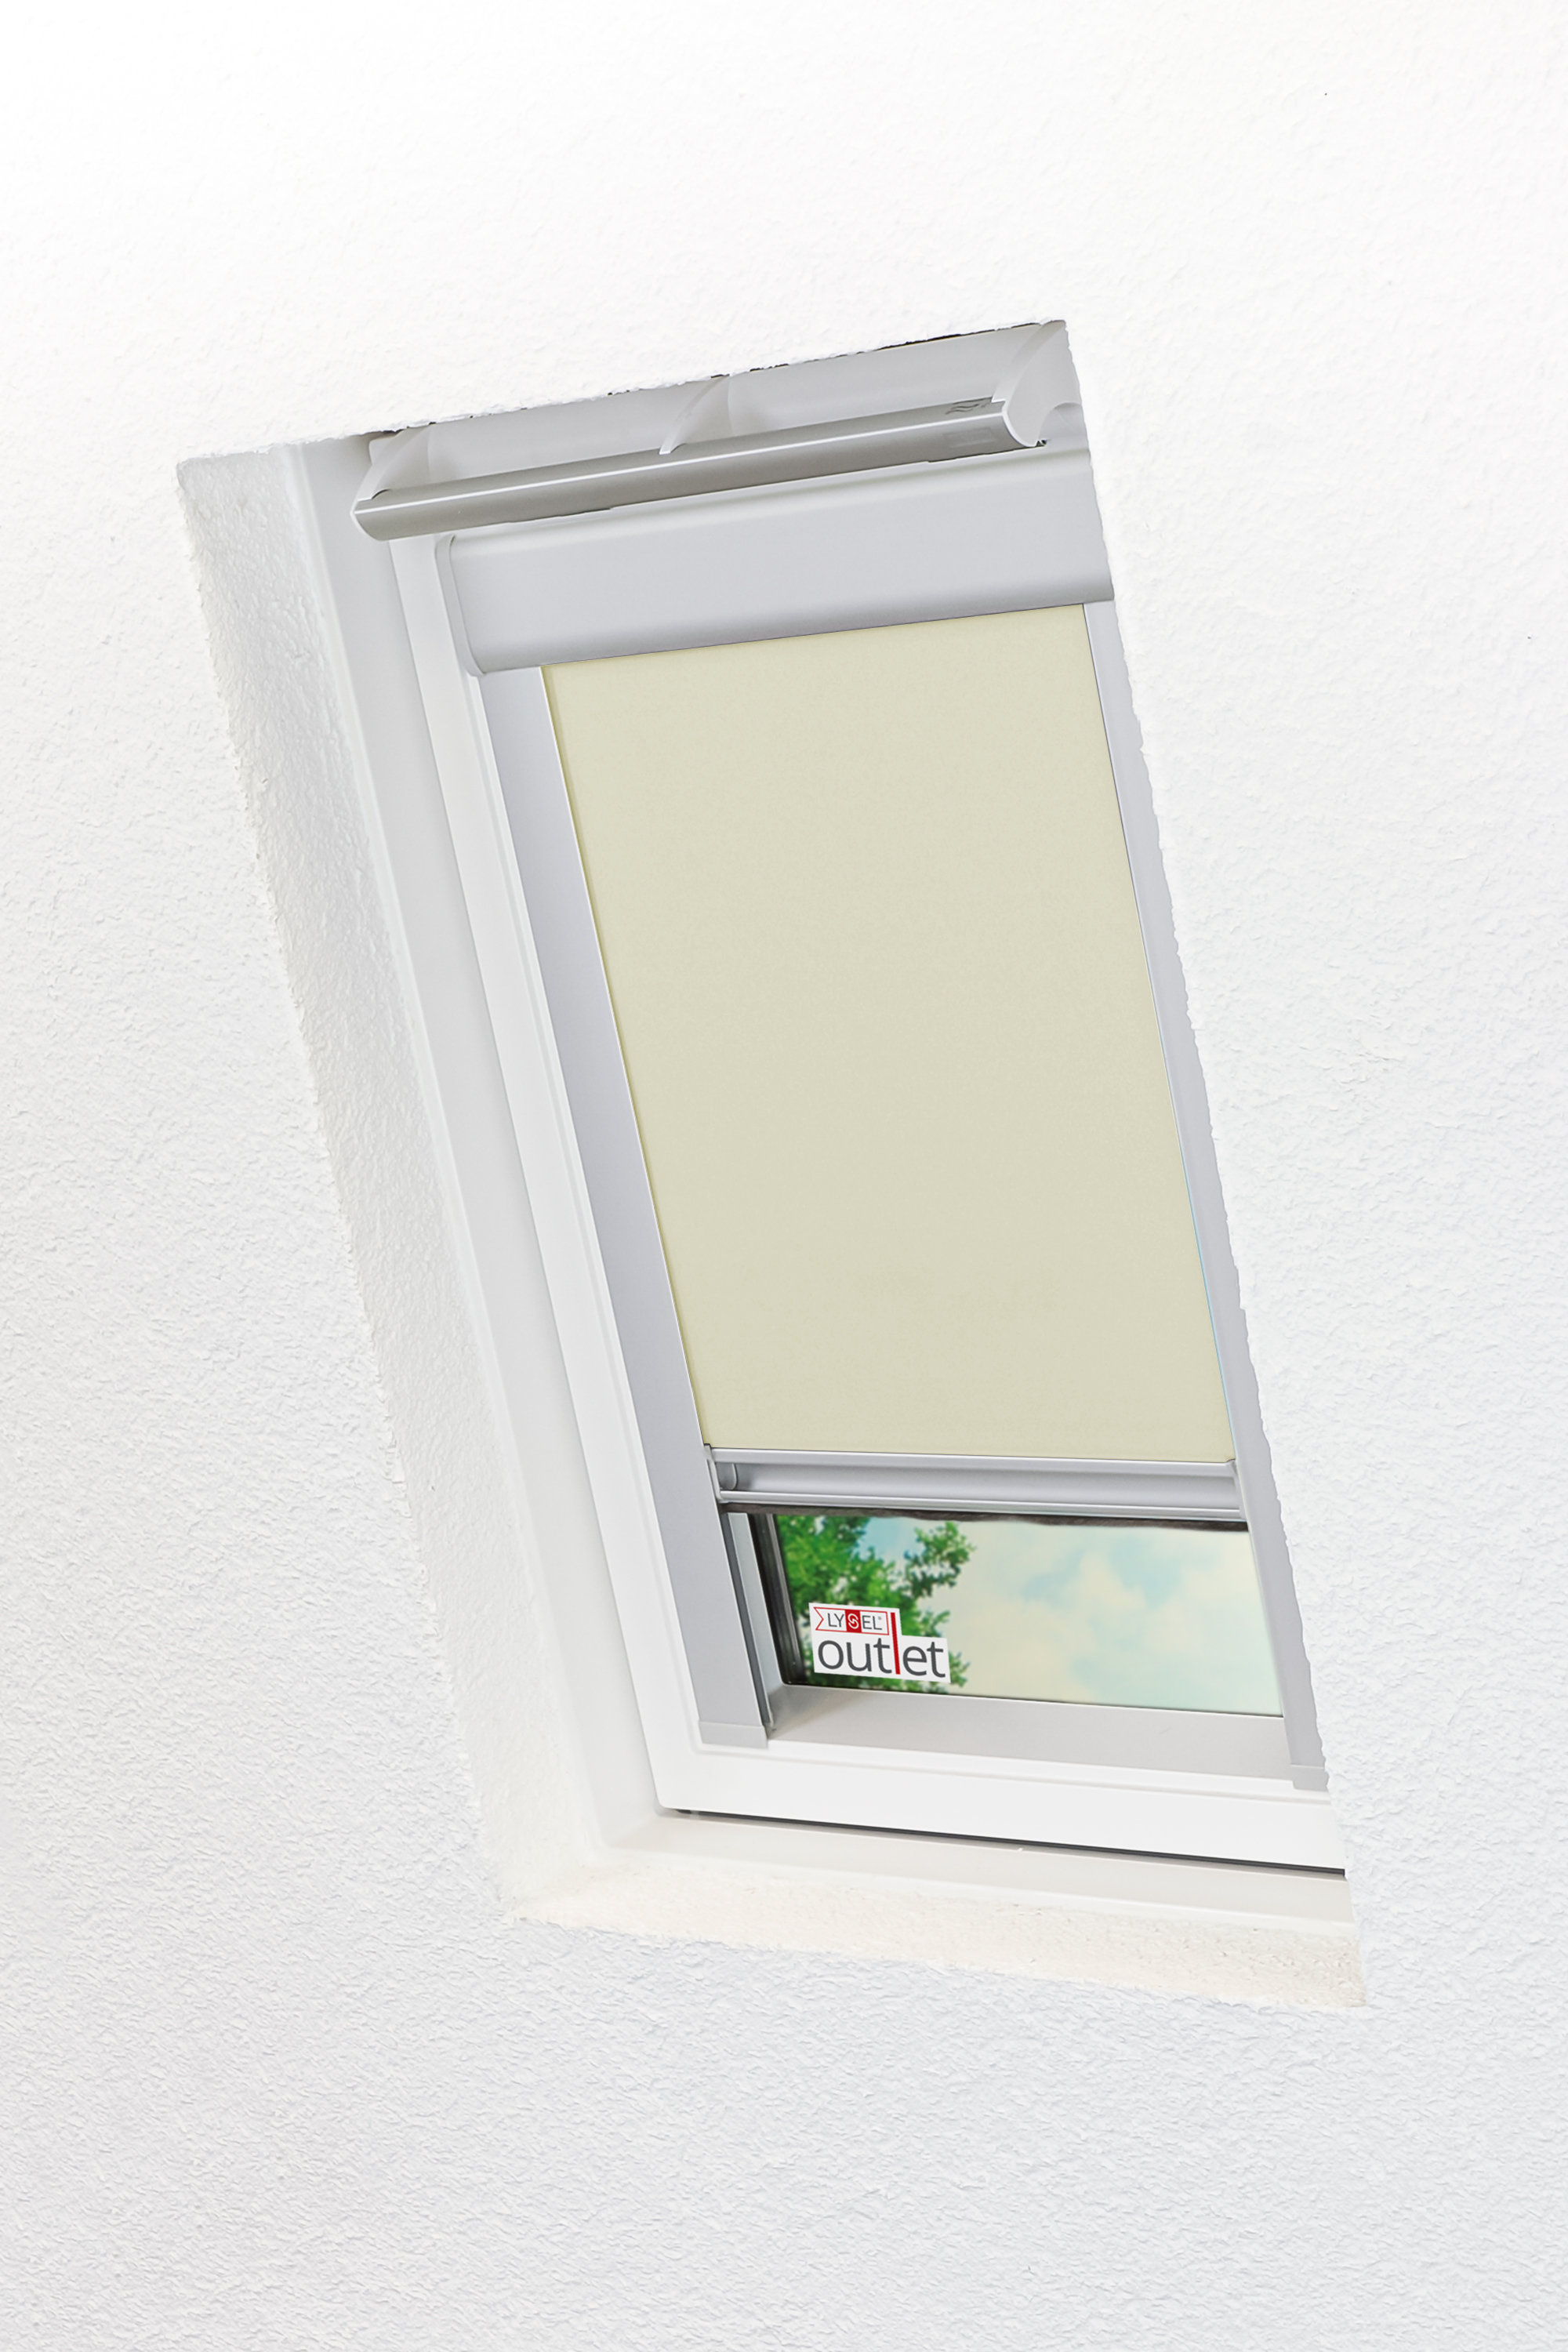 Rollo Velux Dachfenster Abdunkelnd Schnapprollo Dachfensterrollo Lysel Outlet Ebay